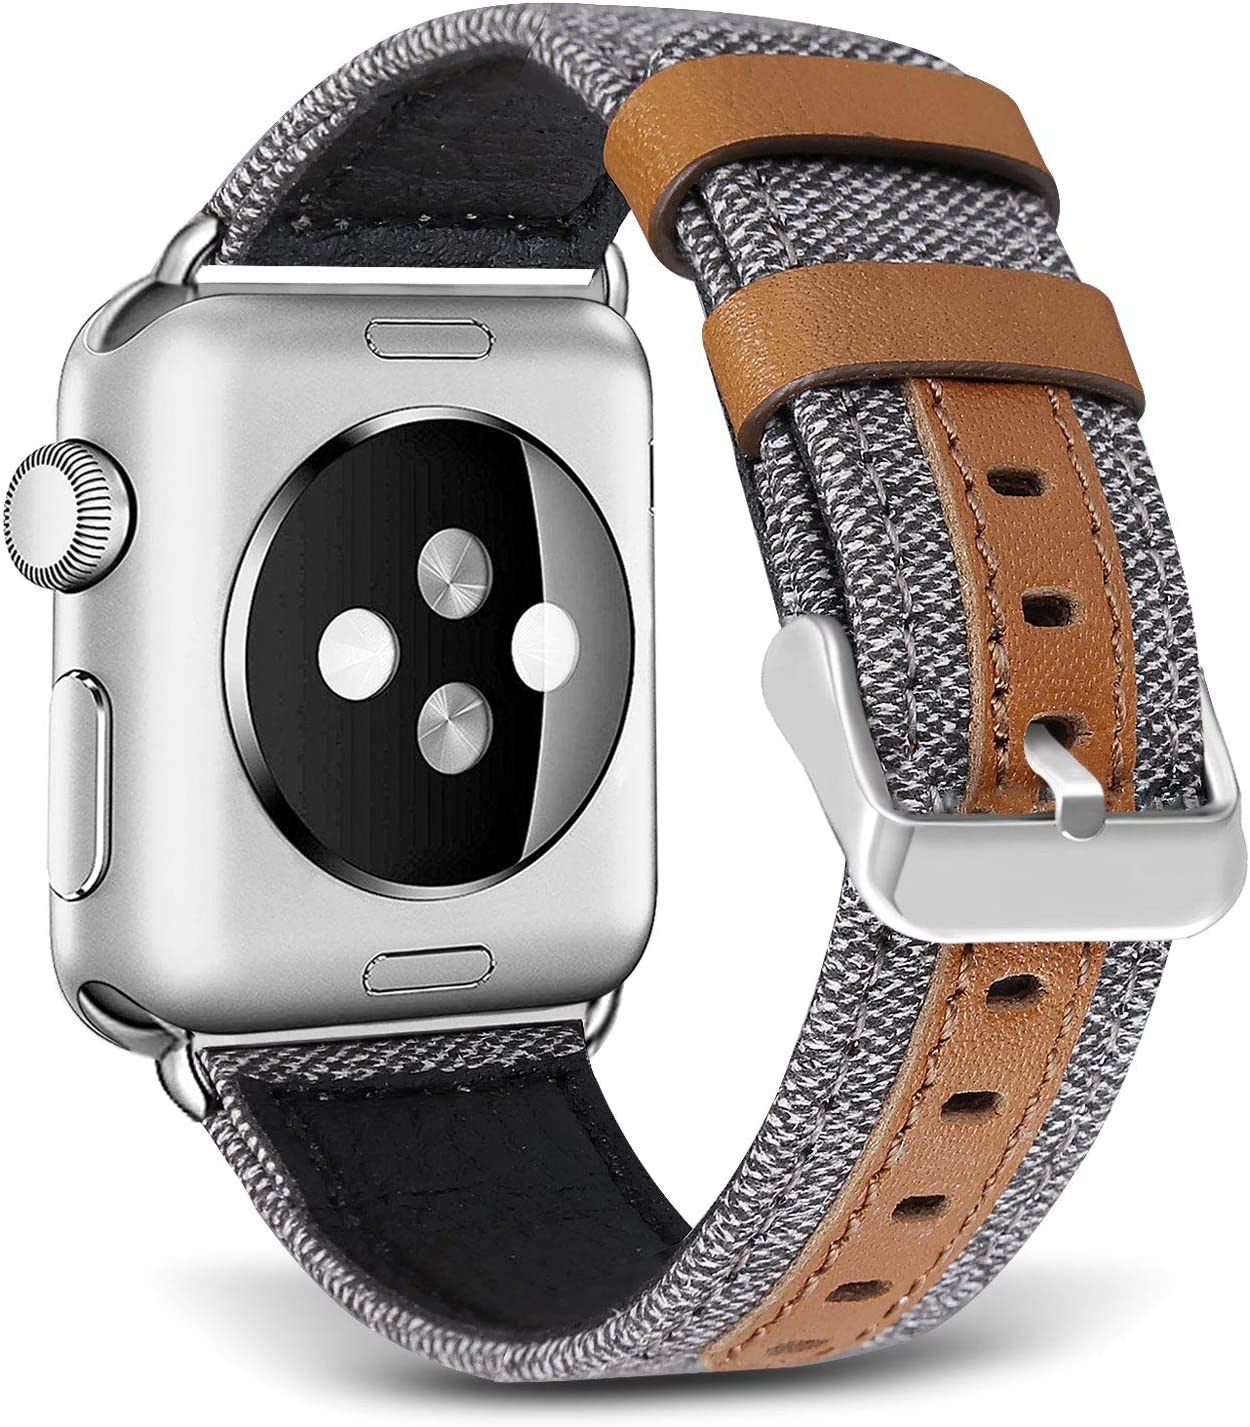 SKYLET Compatible with Apple Watch Bands 44mm 42mm 40mm 38mm Leather Bands, Canvas Fabric Soft Wristbands Compatible with Apple Watch Series 6/5/4/3/2/1/se Men Women Gray